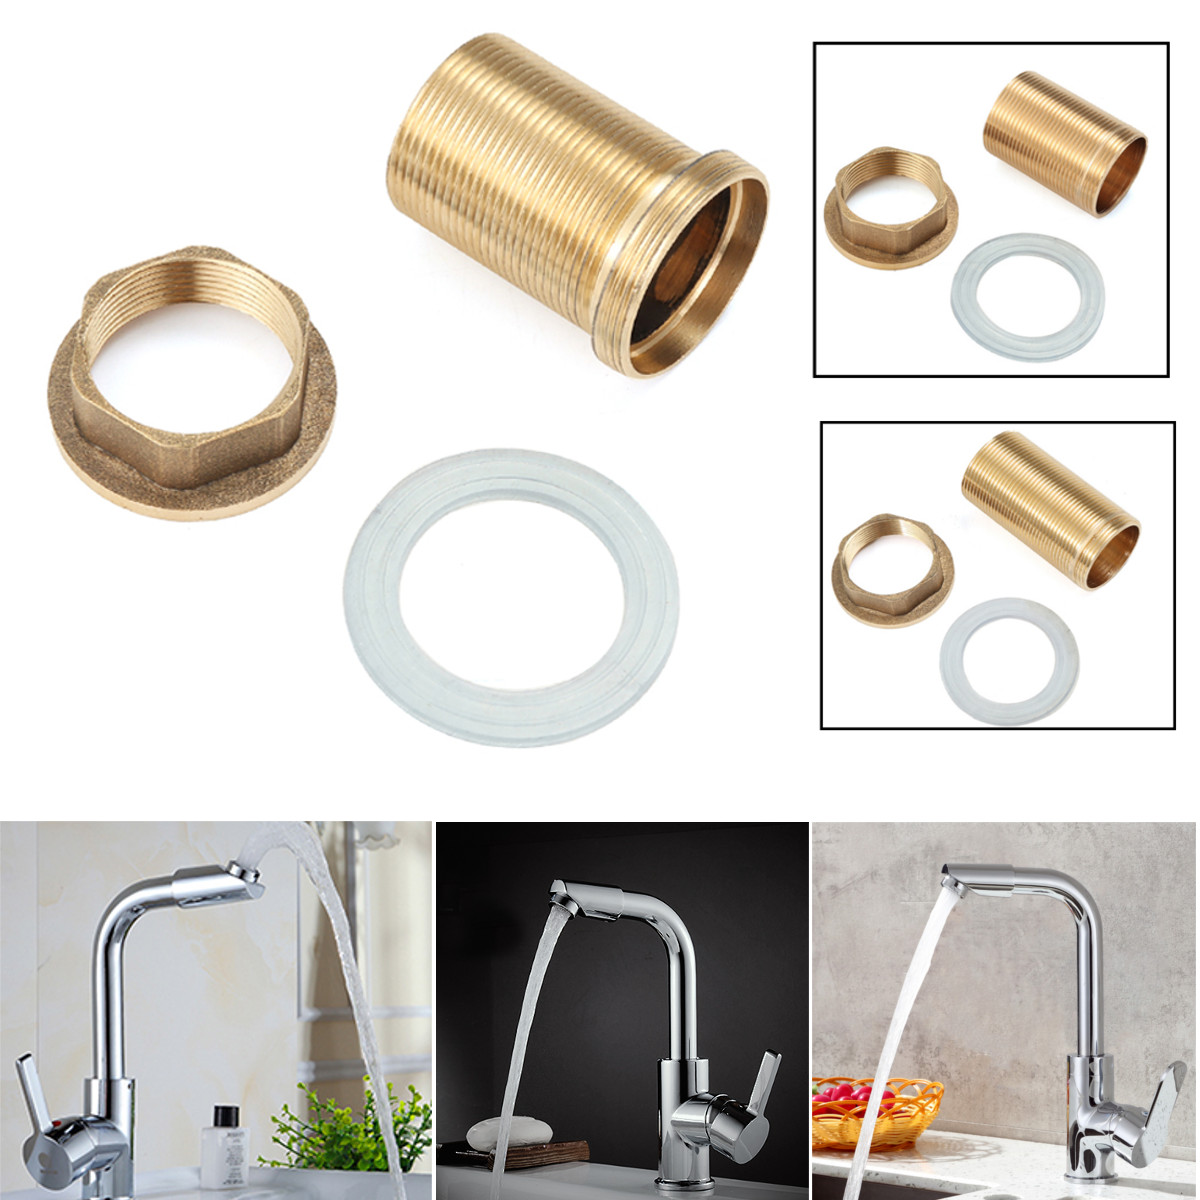 Kitchen Copper Basin Mixer Tap Repair Fitting Kit Faucet Threaded Brass Tube Nut Washer Parts Home Kitchen Faucet Accessories